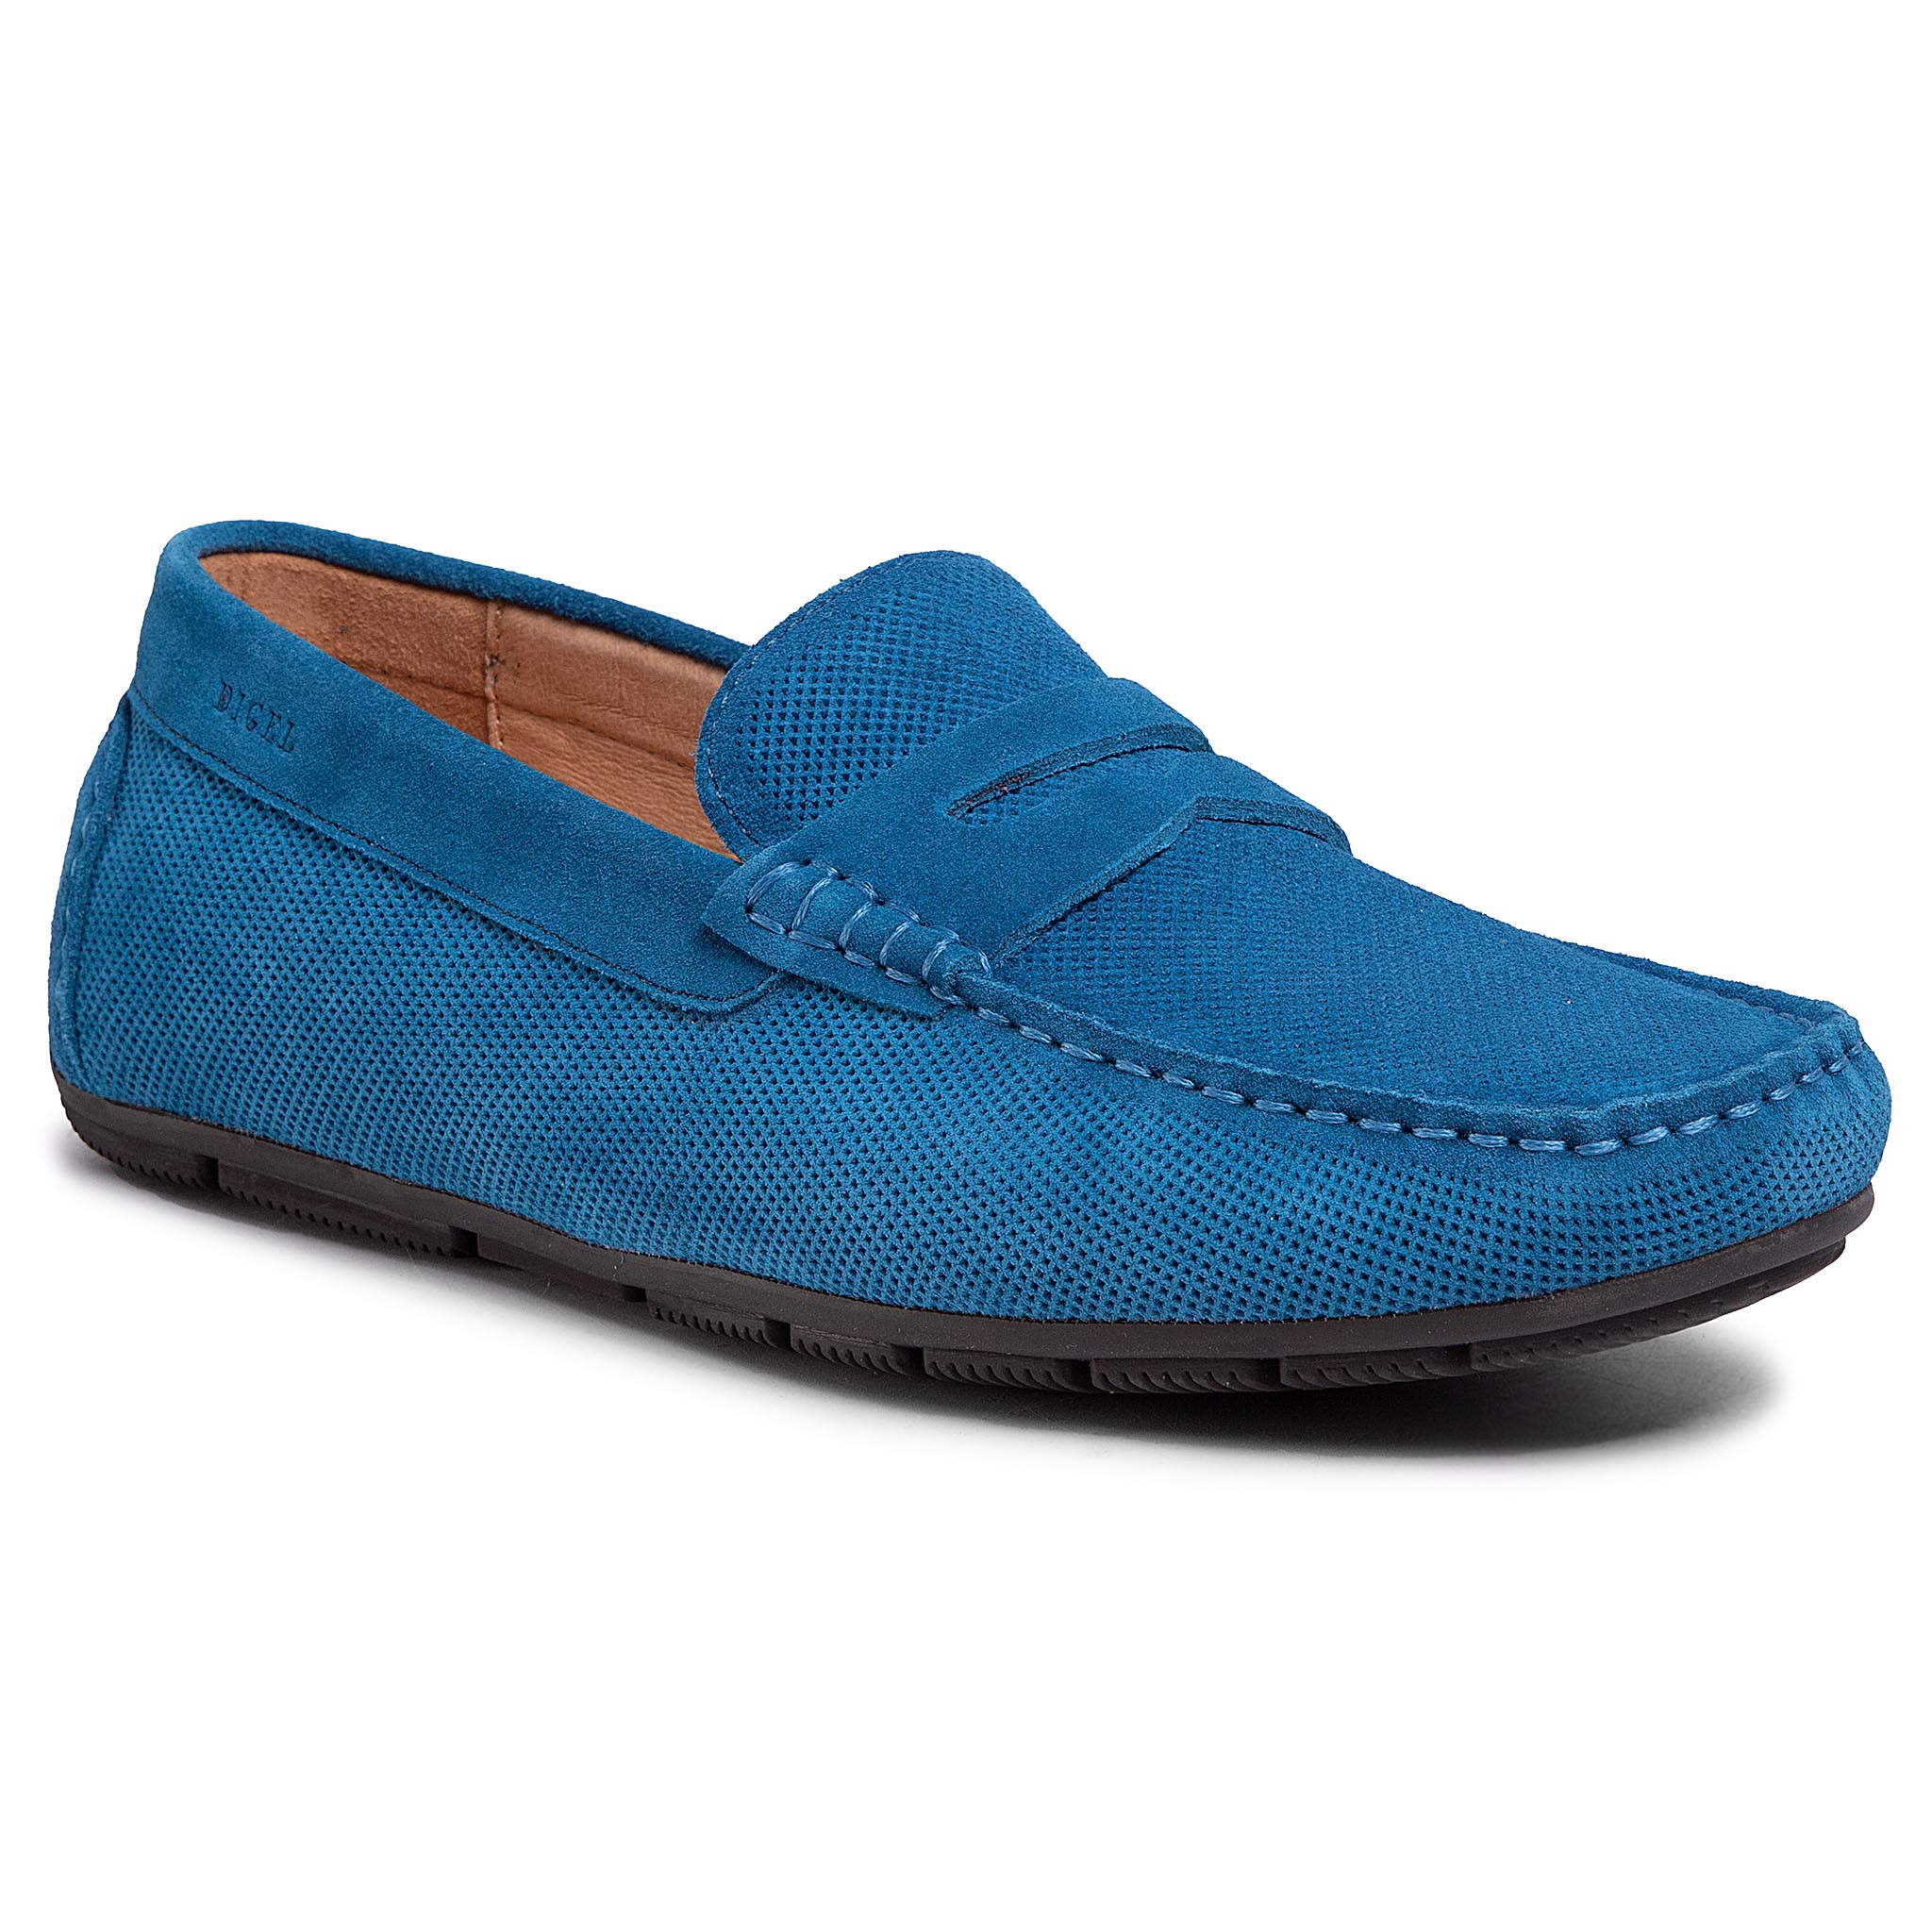 Mocassins DIGEL - Salvatore 1109704 24